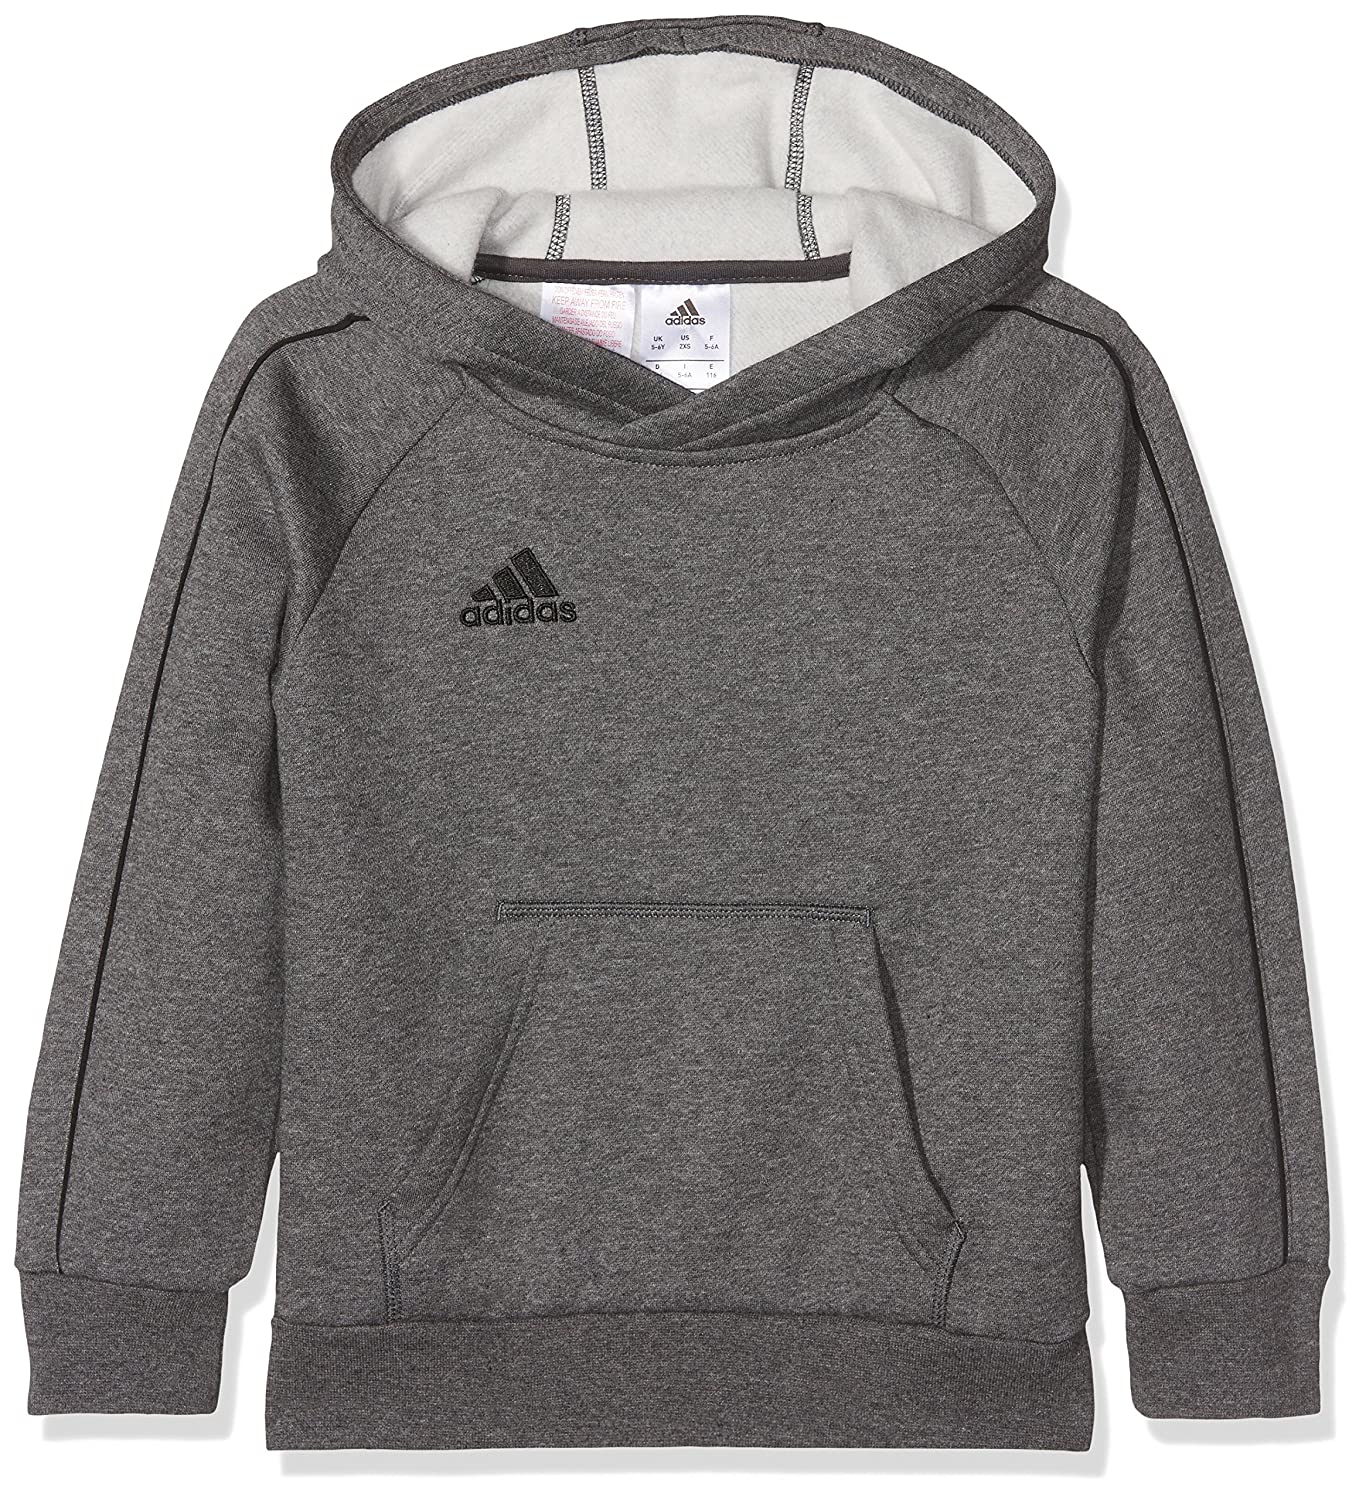 adidas Children's Core18 Hoody